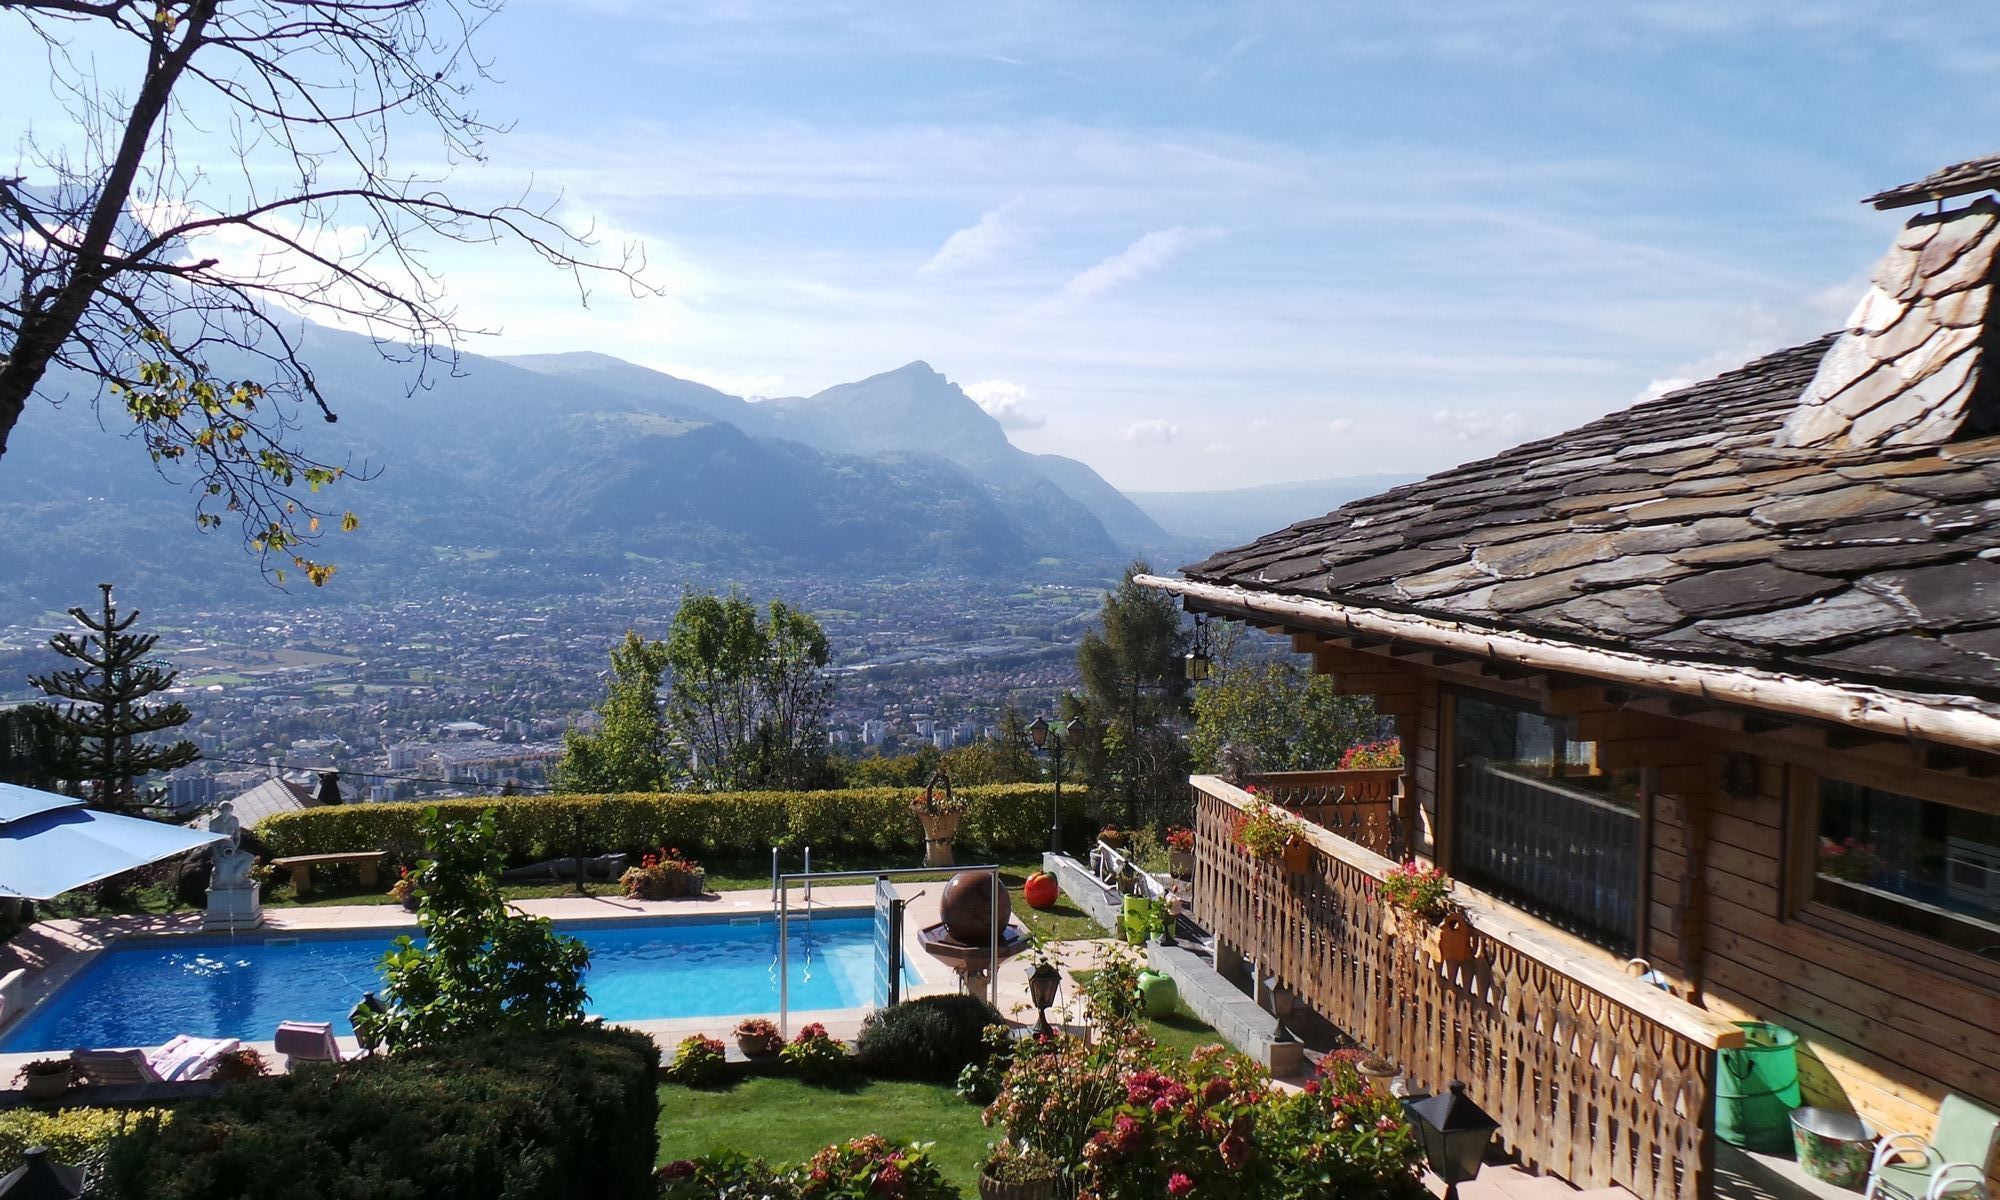 Property For Sale at Chatillon sur Cluses - Villa Archimede